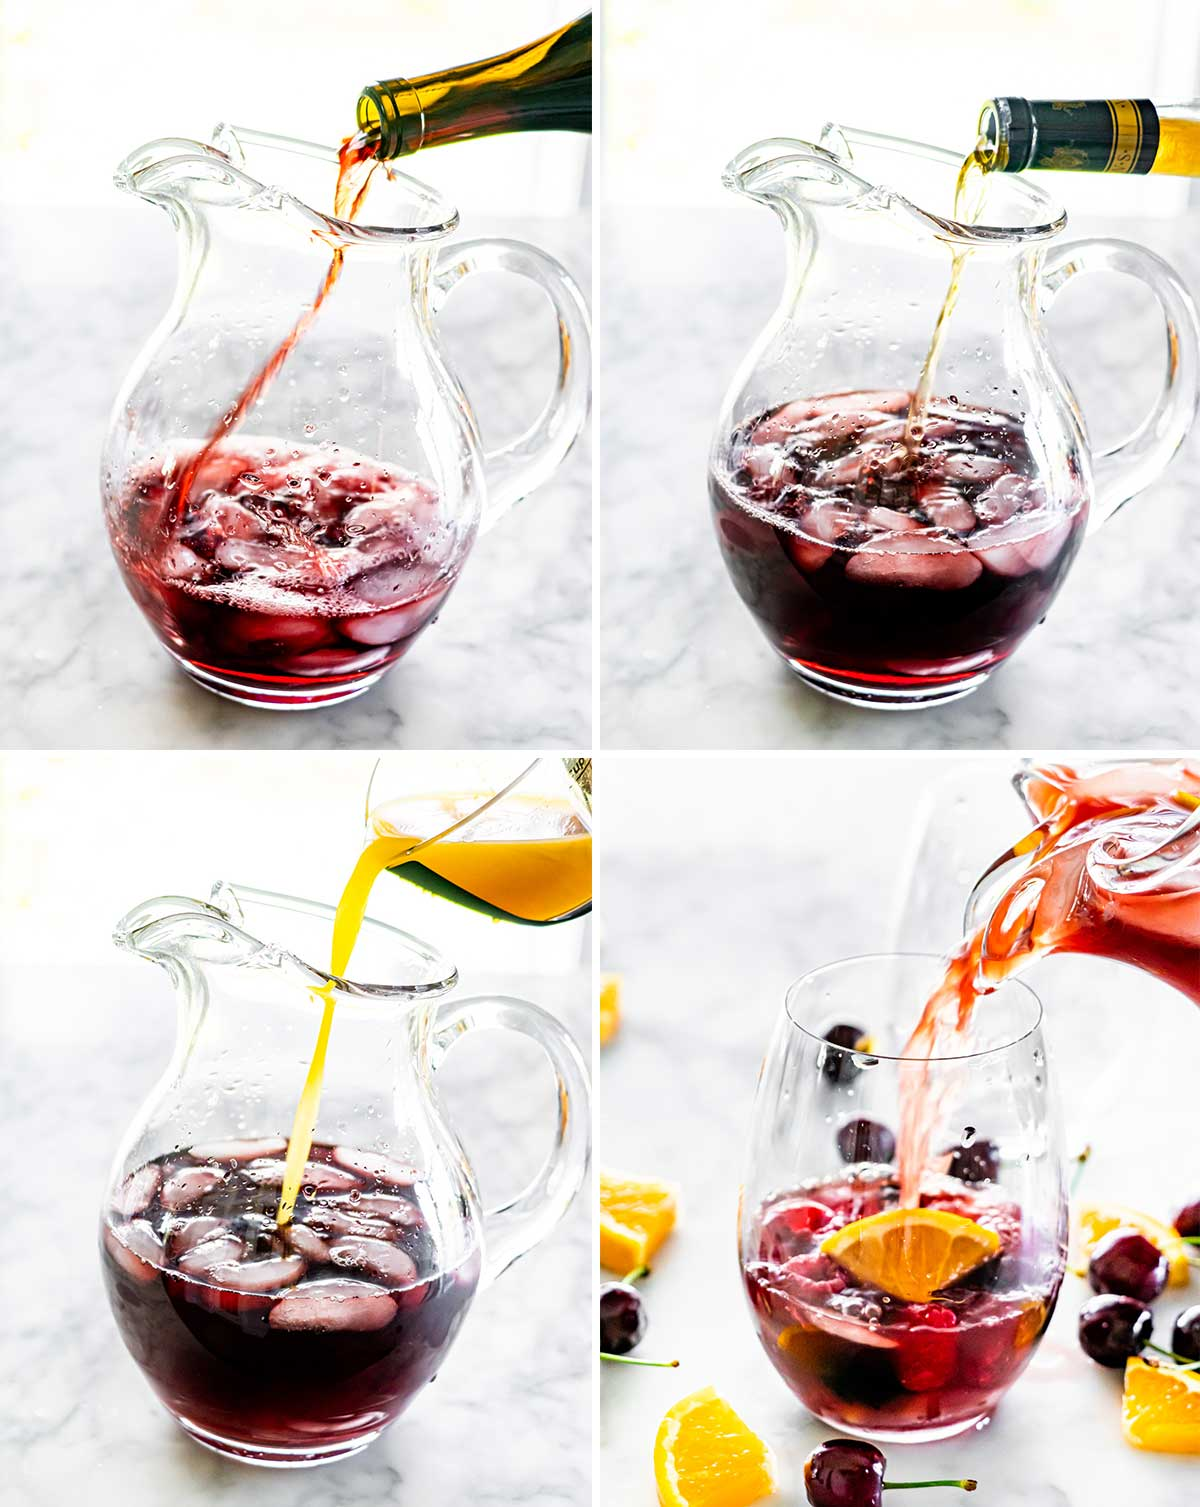 process shots showing to make a red sangria